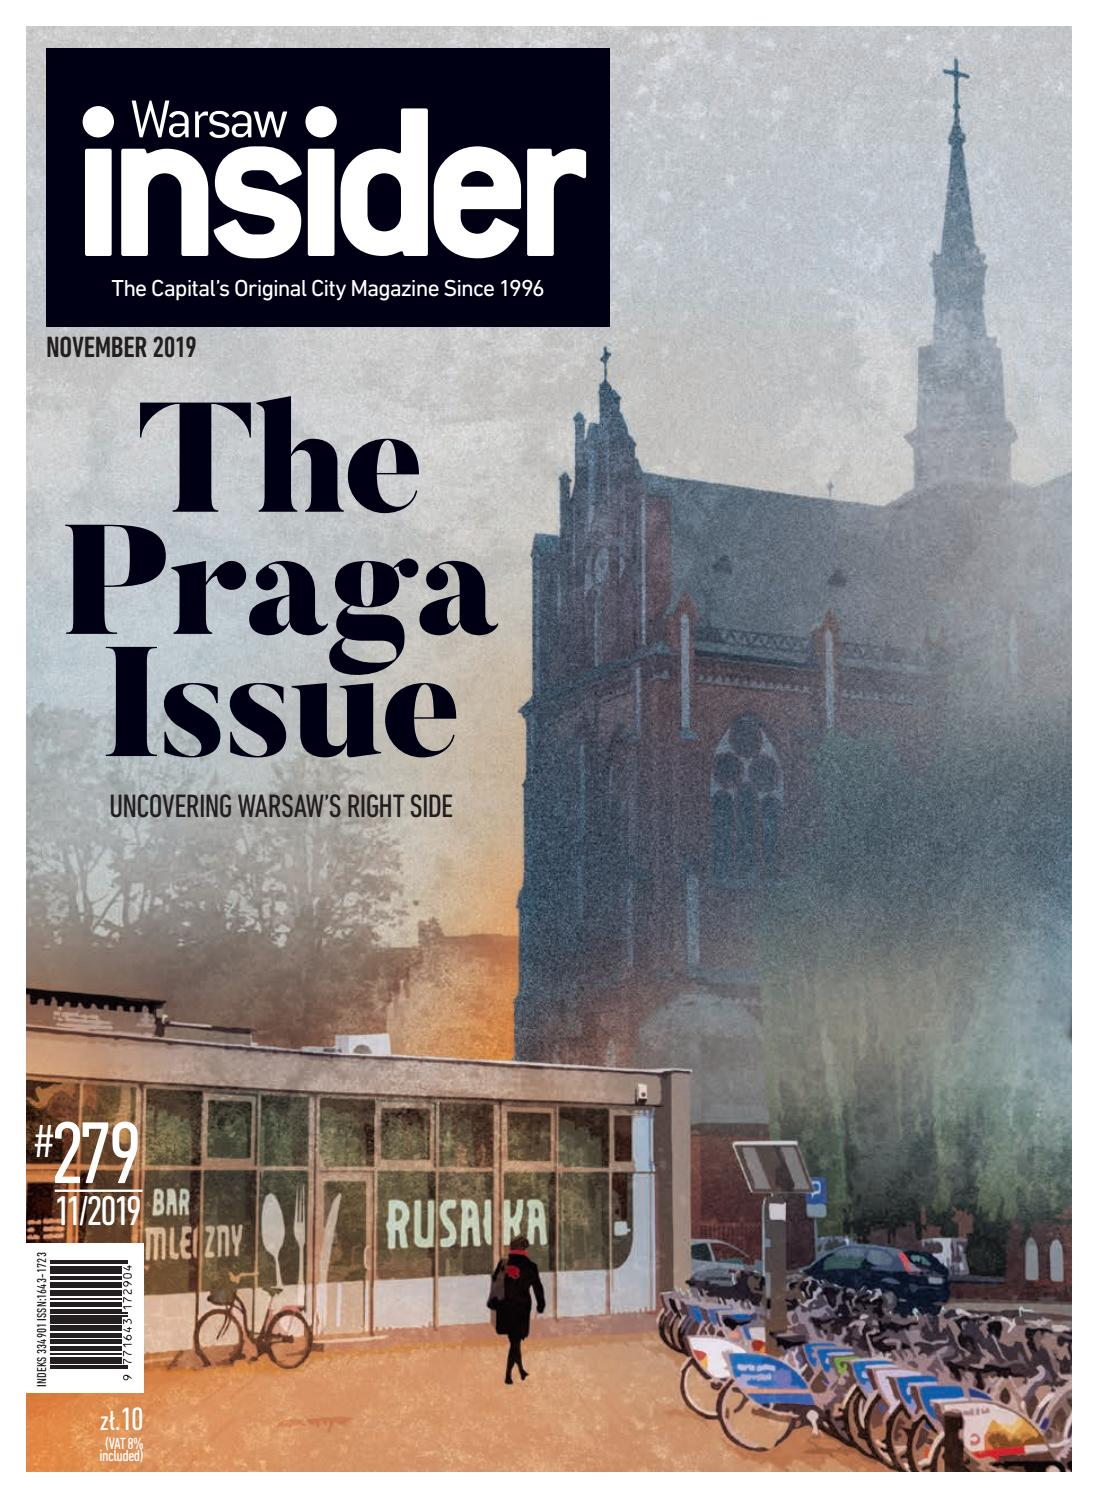 Warsaw Insider November 2019 279 By Valkea Media Pro Issuu